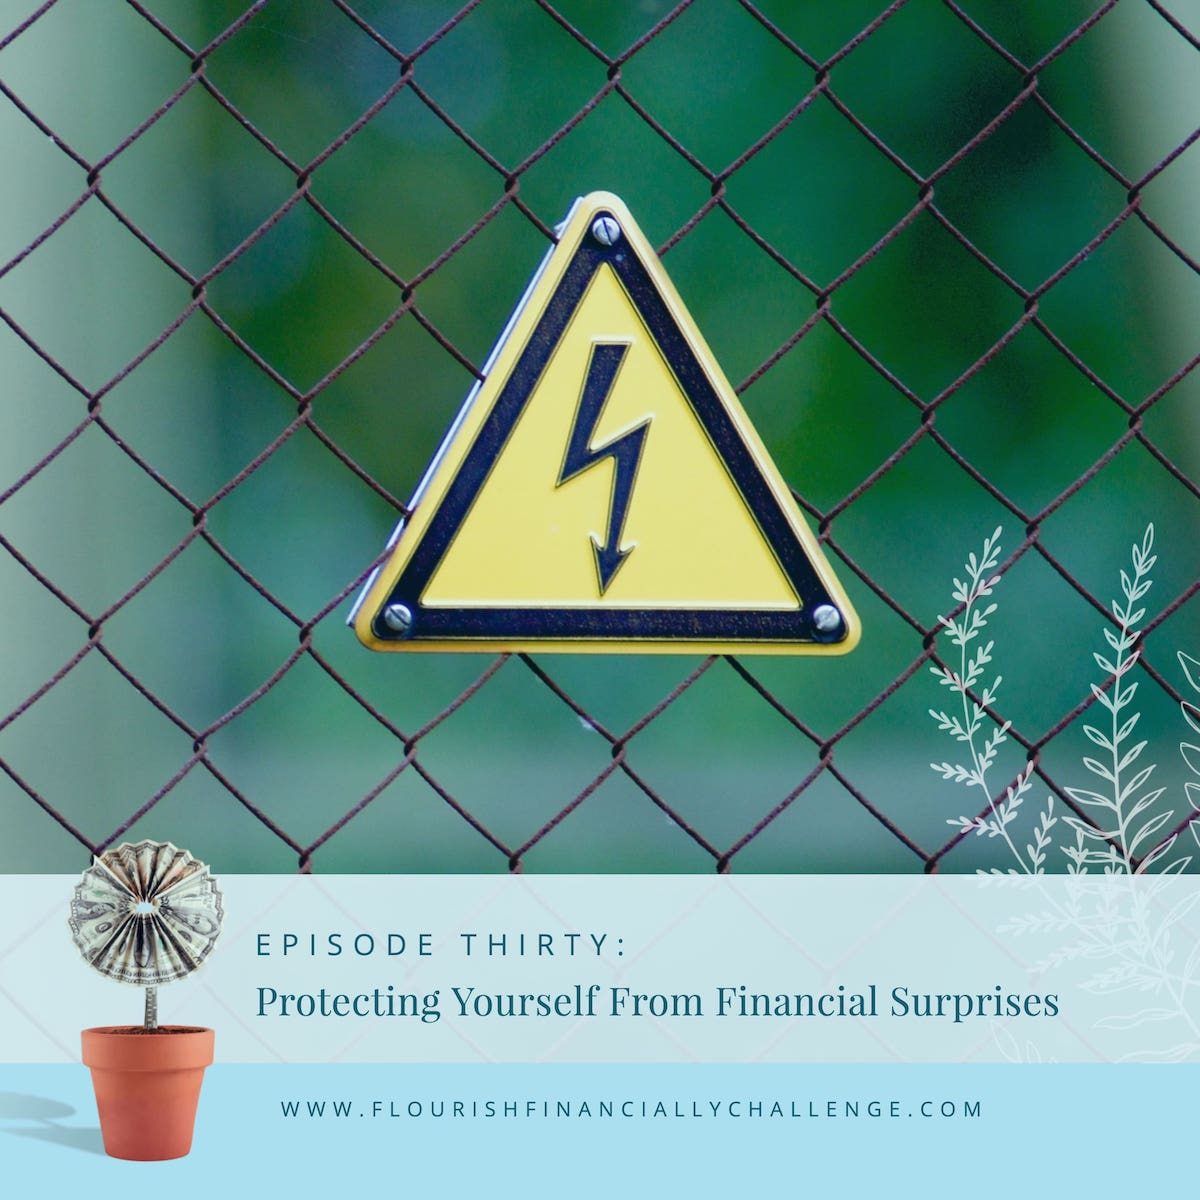 Protecting Yourself From Financial Surprises